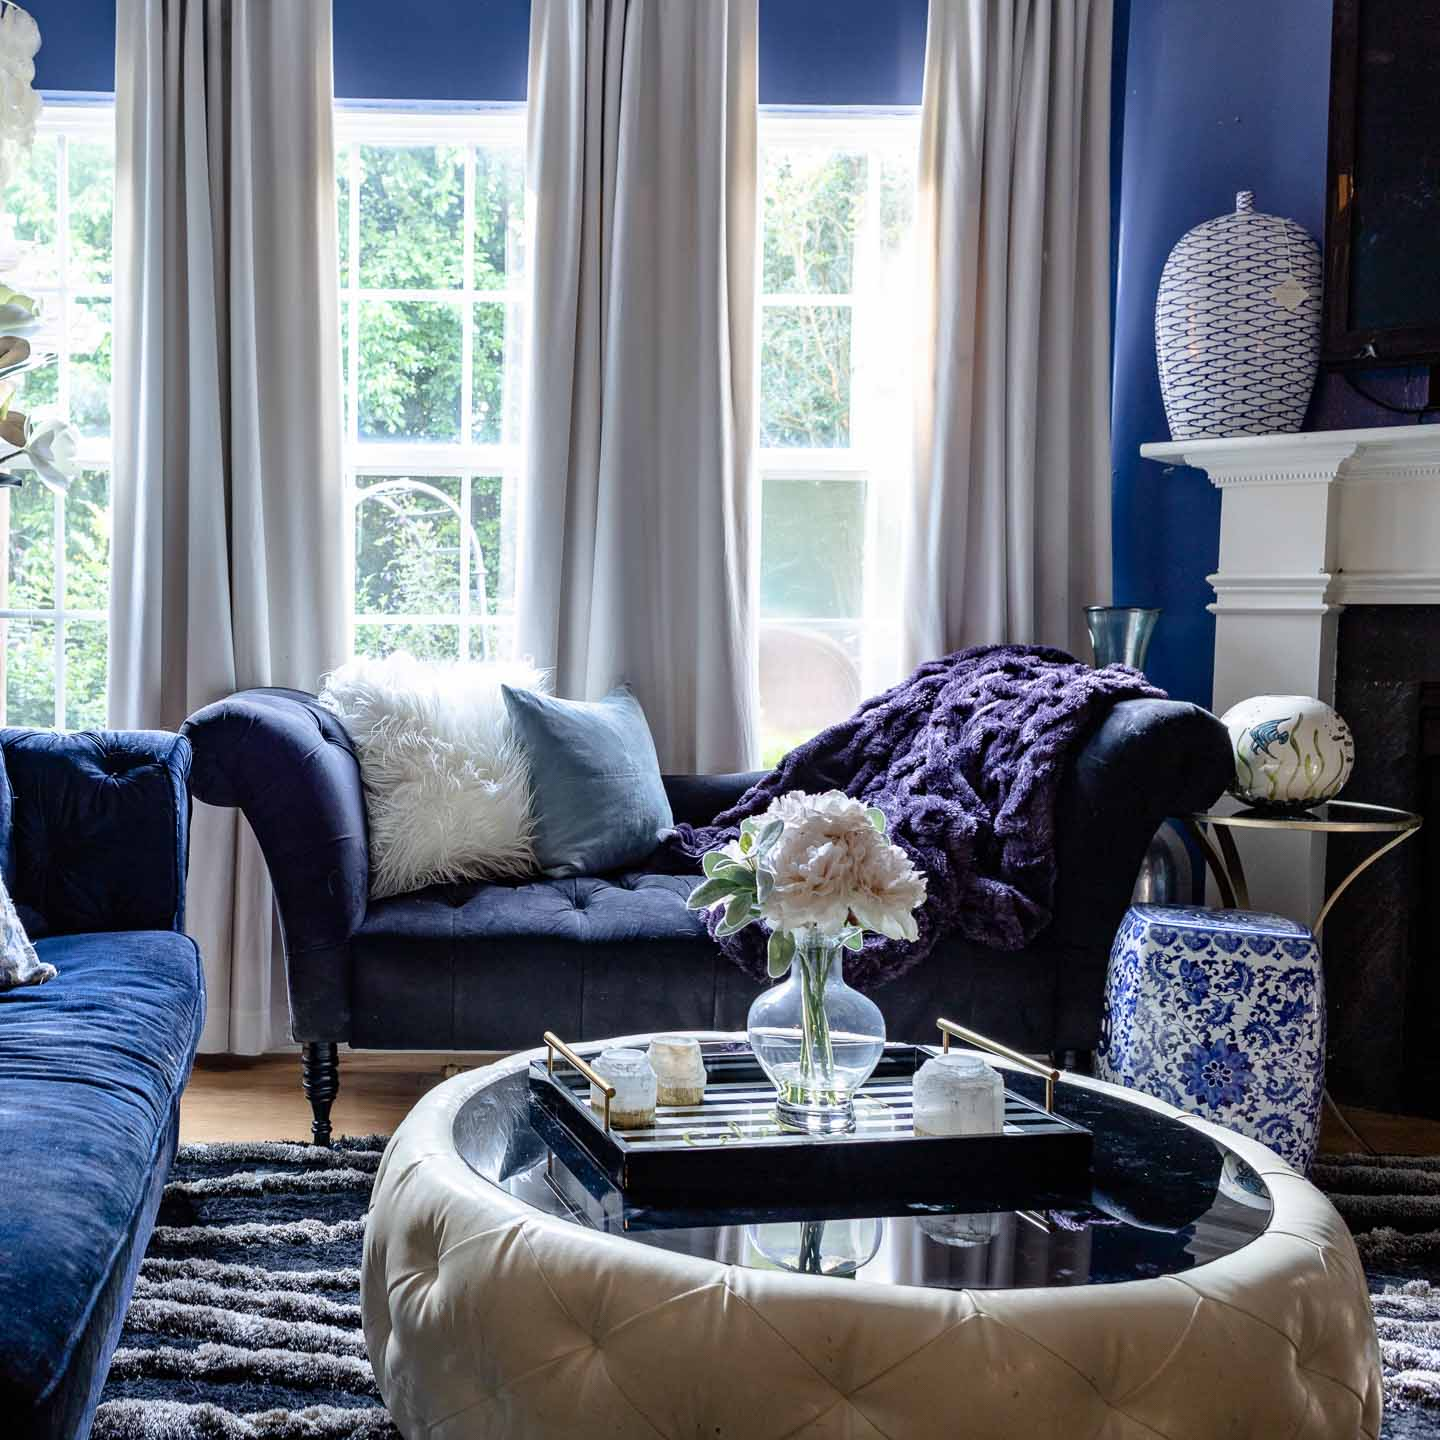 Blue And White Decorating Ideas: 10 Ways To Decorate With